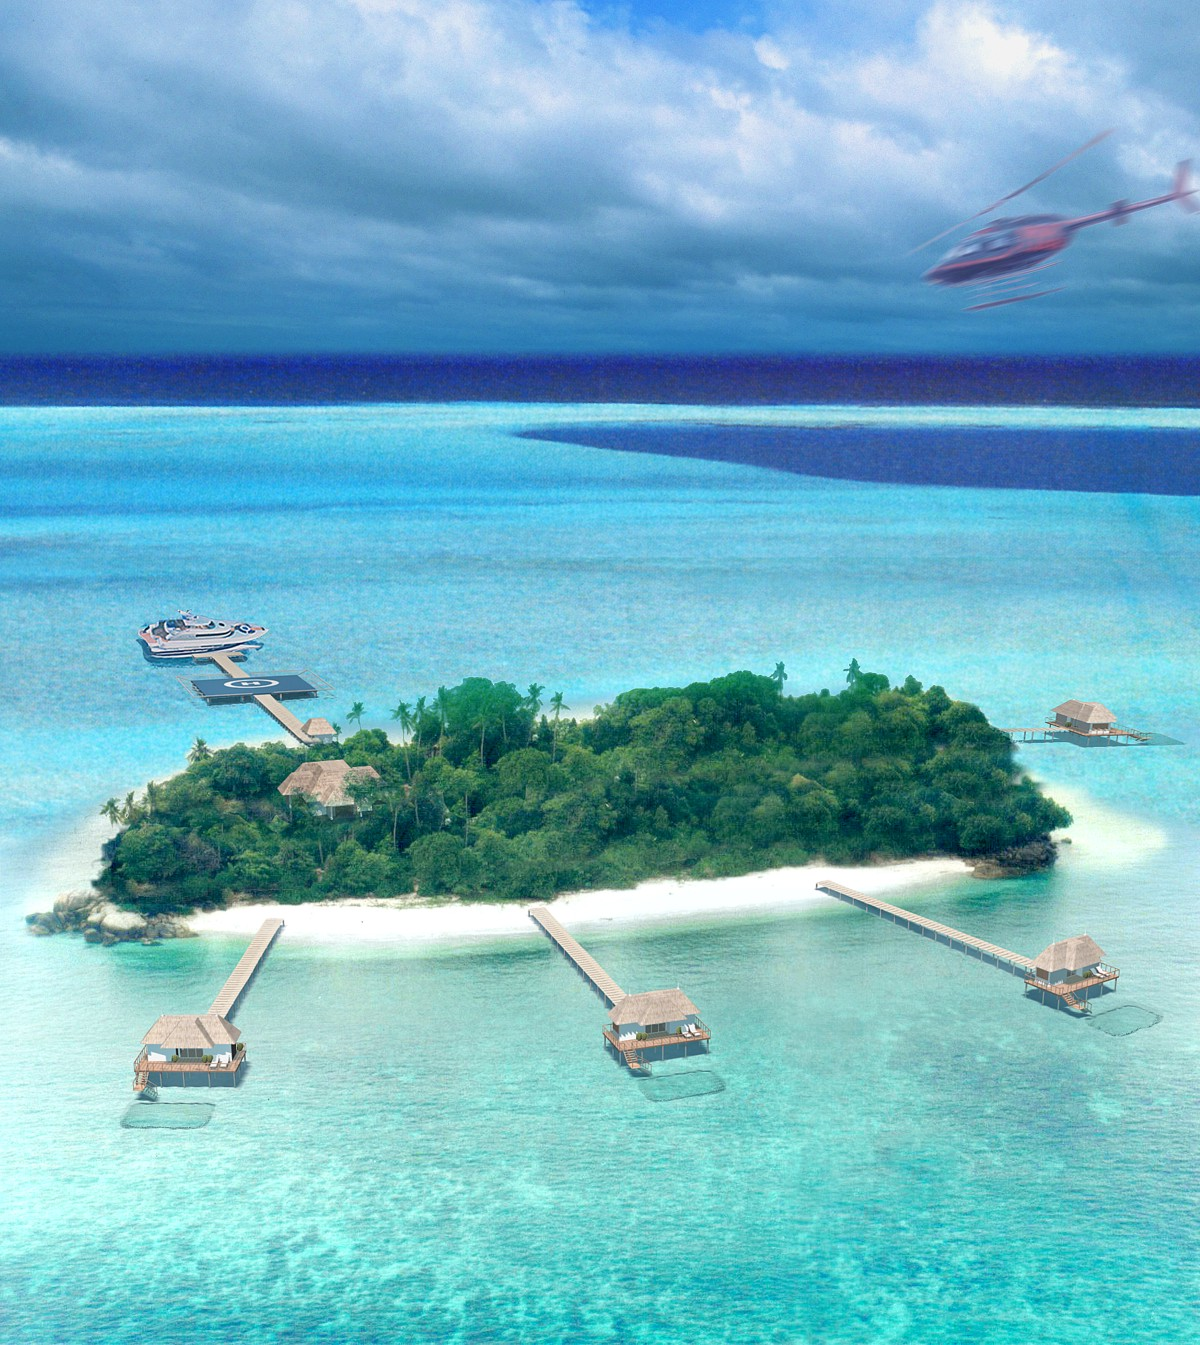 Island Beach People: Room With A View And A Helicopter Club 151 Resorts IntL